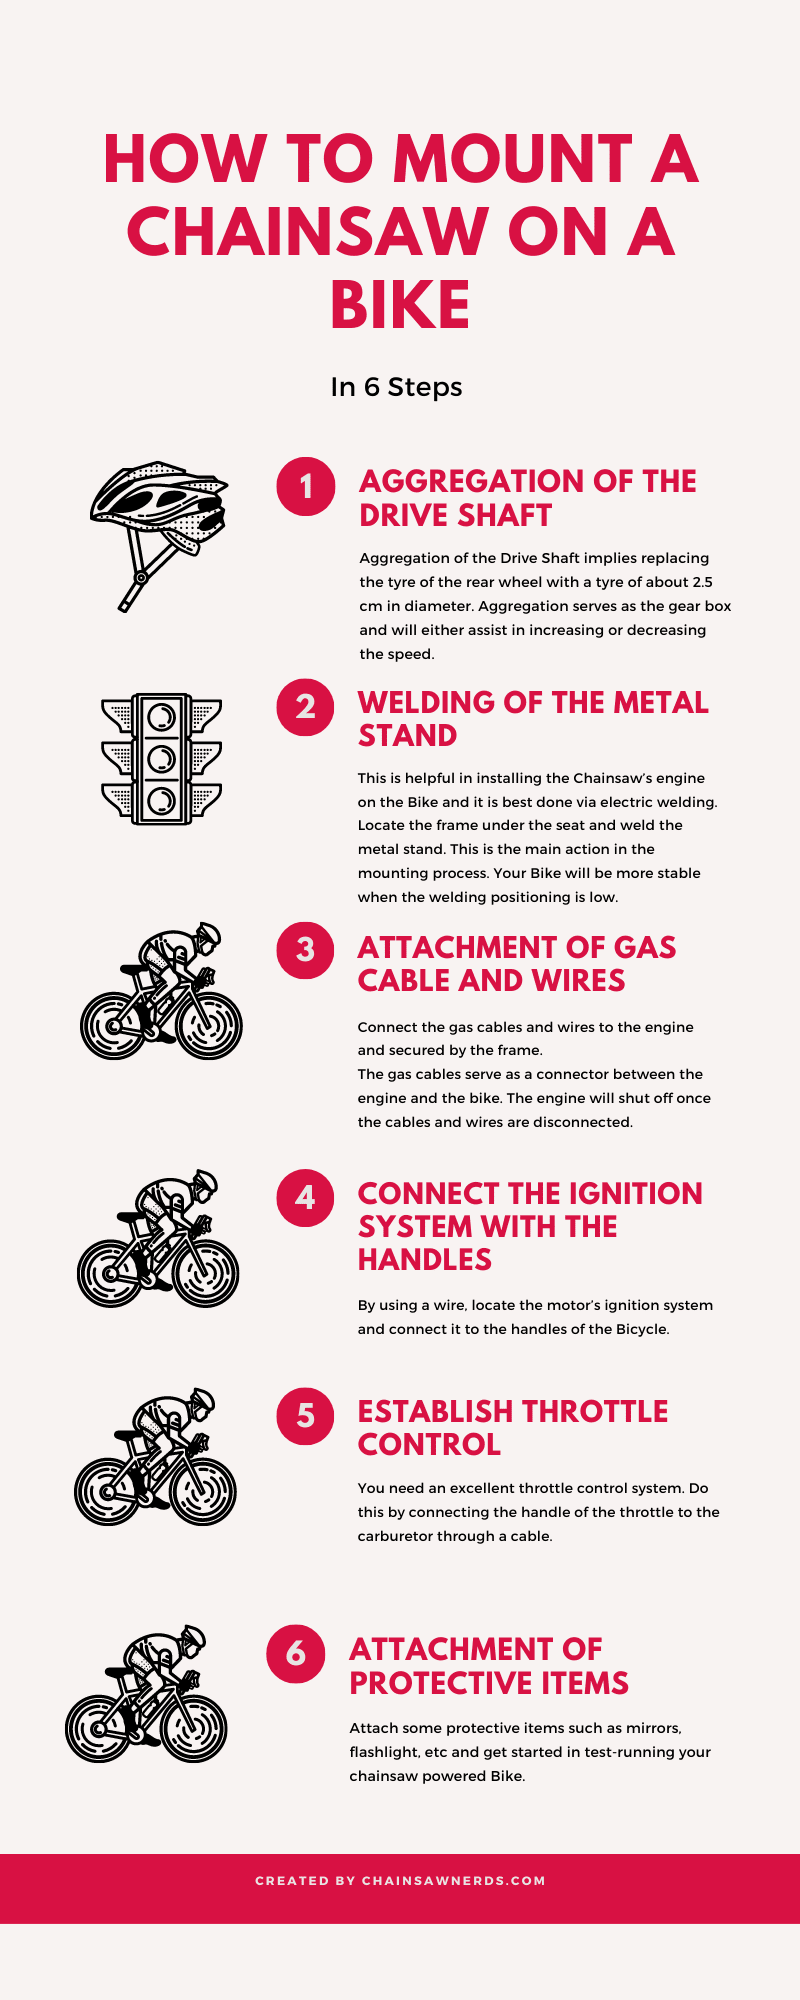 [infographic] How To Mount A Chainsaw On A Bike